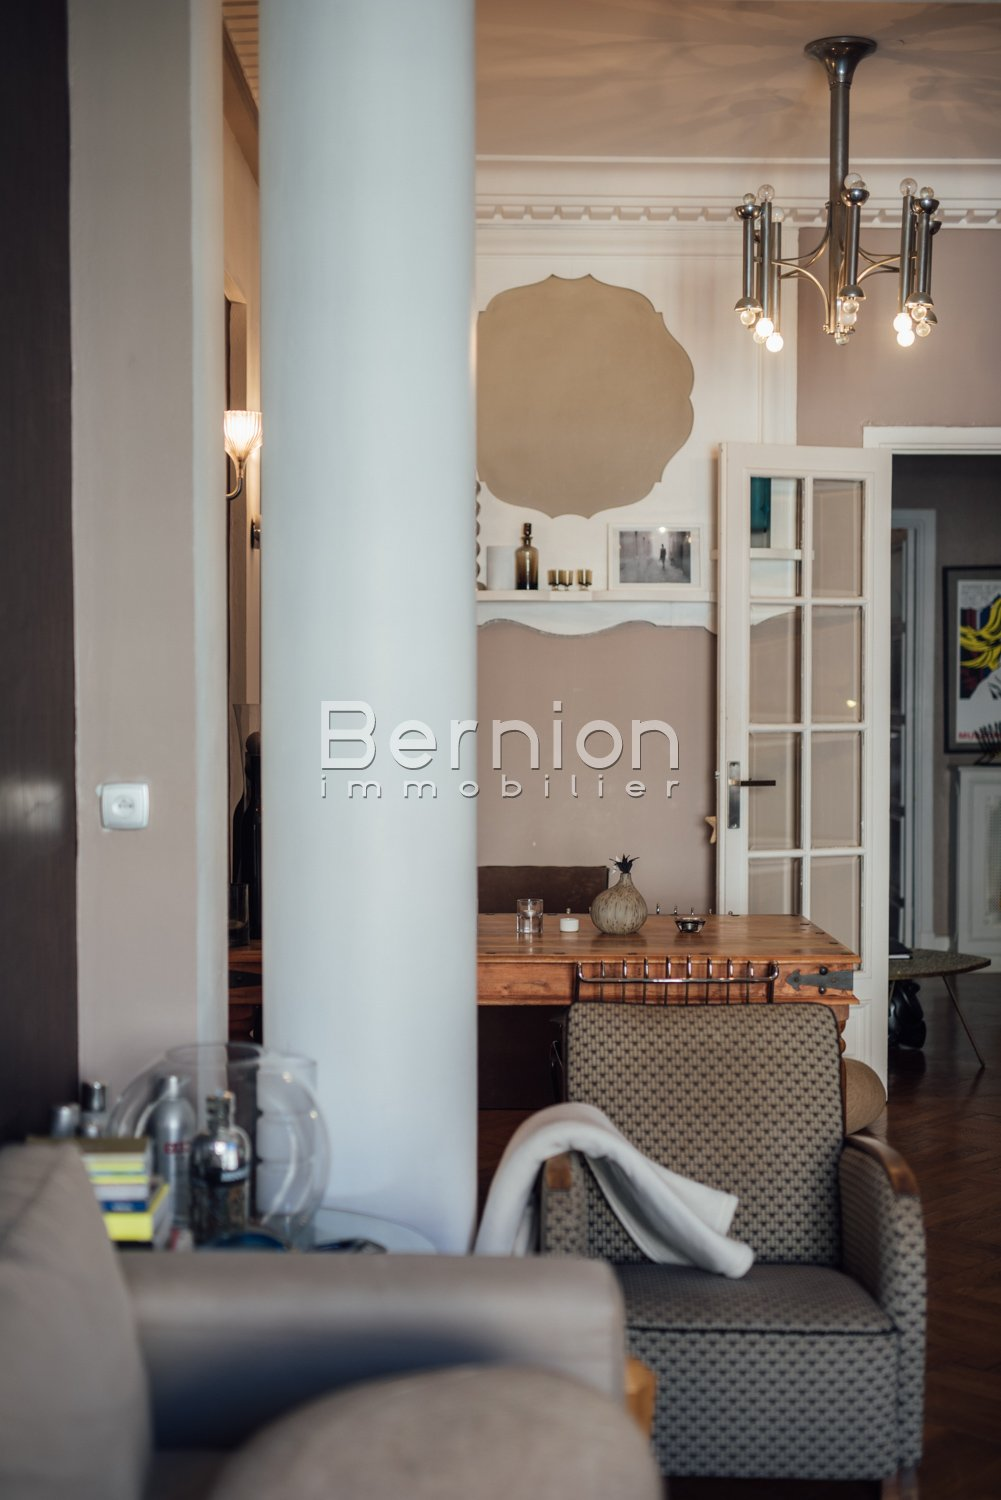 For Sale, Nice City Center Beautiful 72 sqm Apartment with terrace in Art Deco Building / photo 11